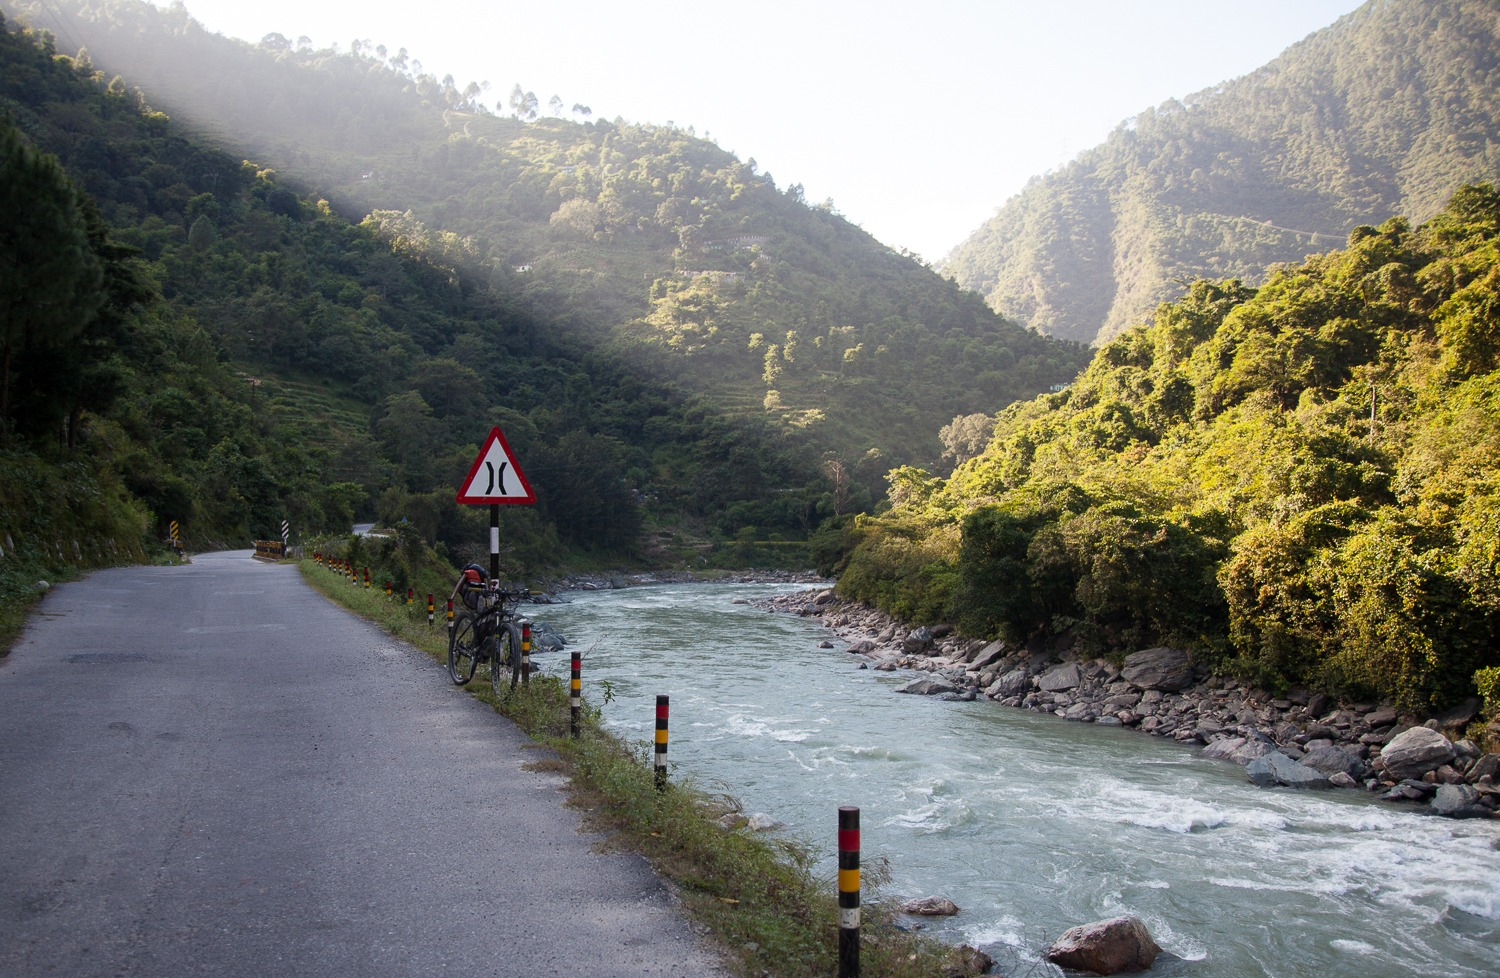 90 Days Cycling in the Himalayas: Day 85-86: Banyani to Adibadri